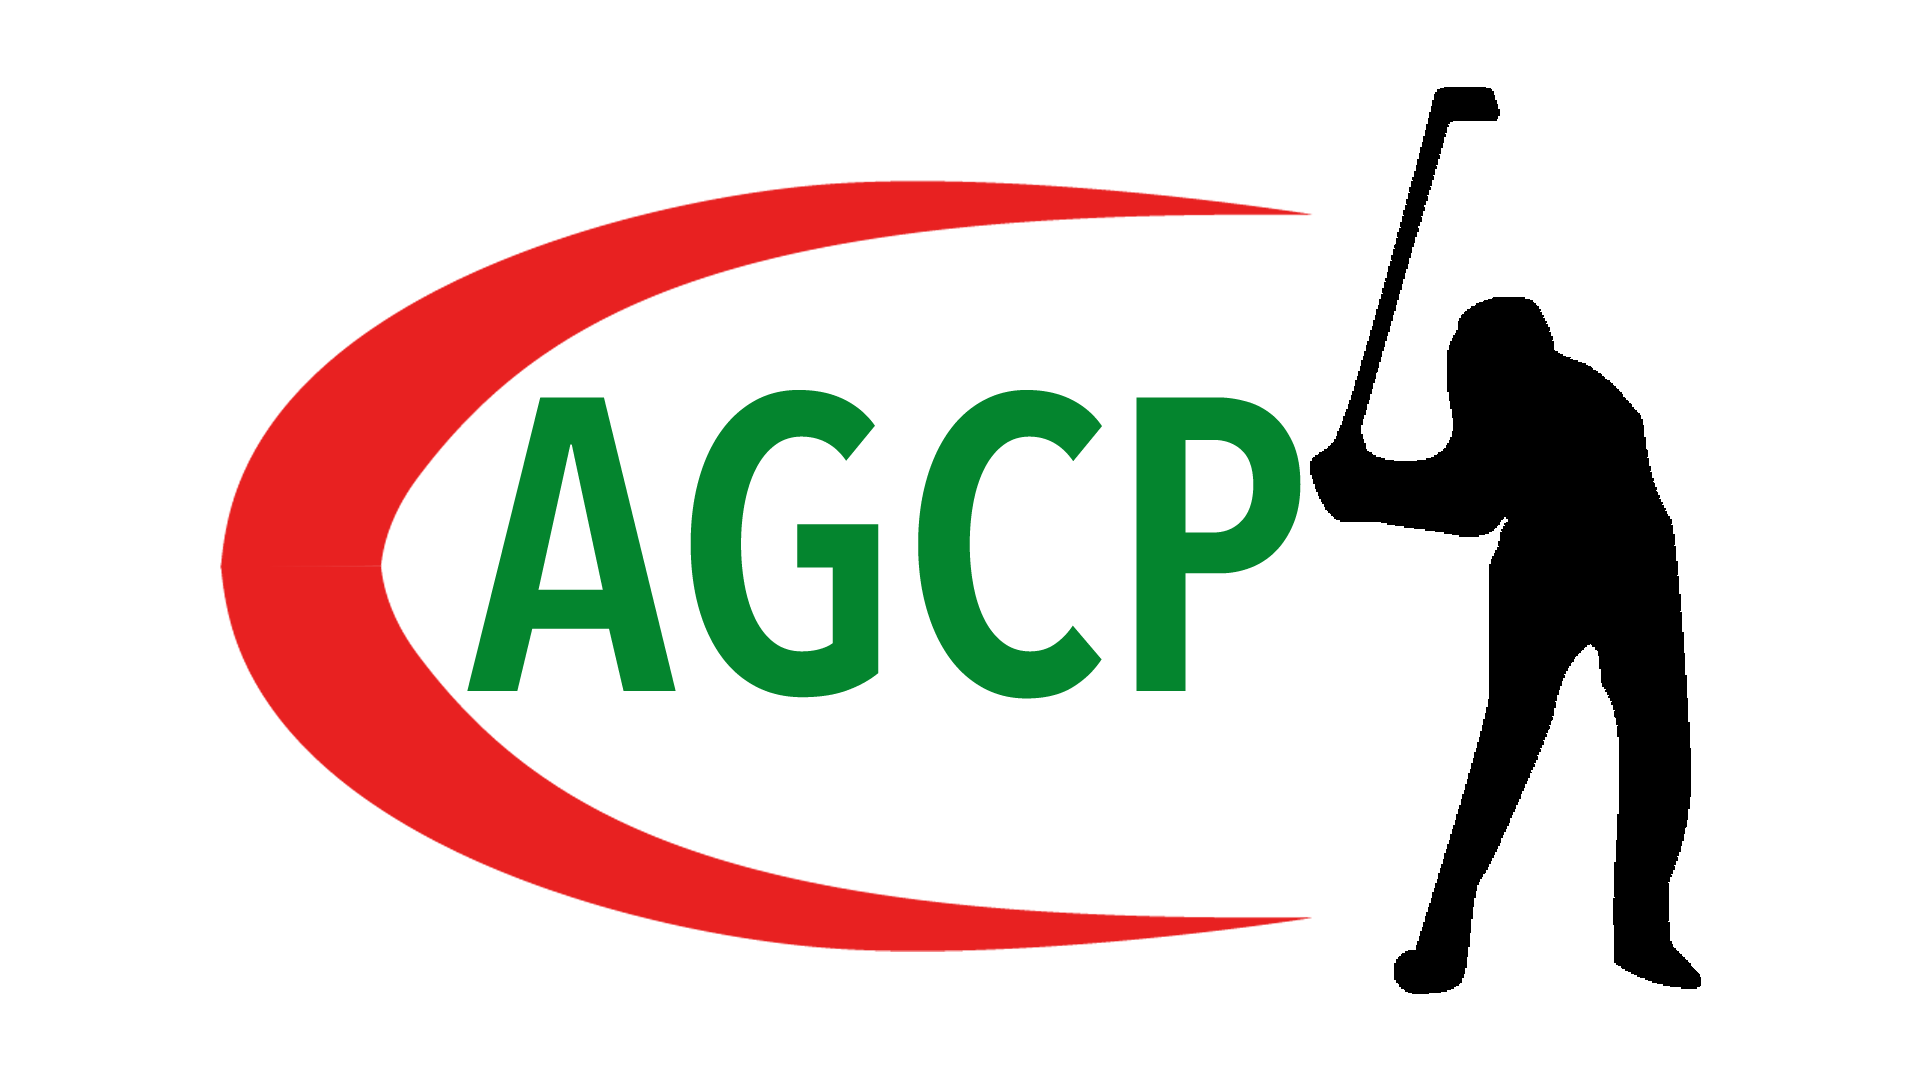 ASCGP_Vector_Logo-w-Text-Black